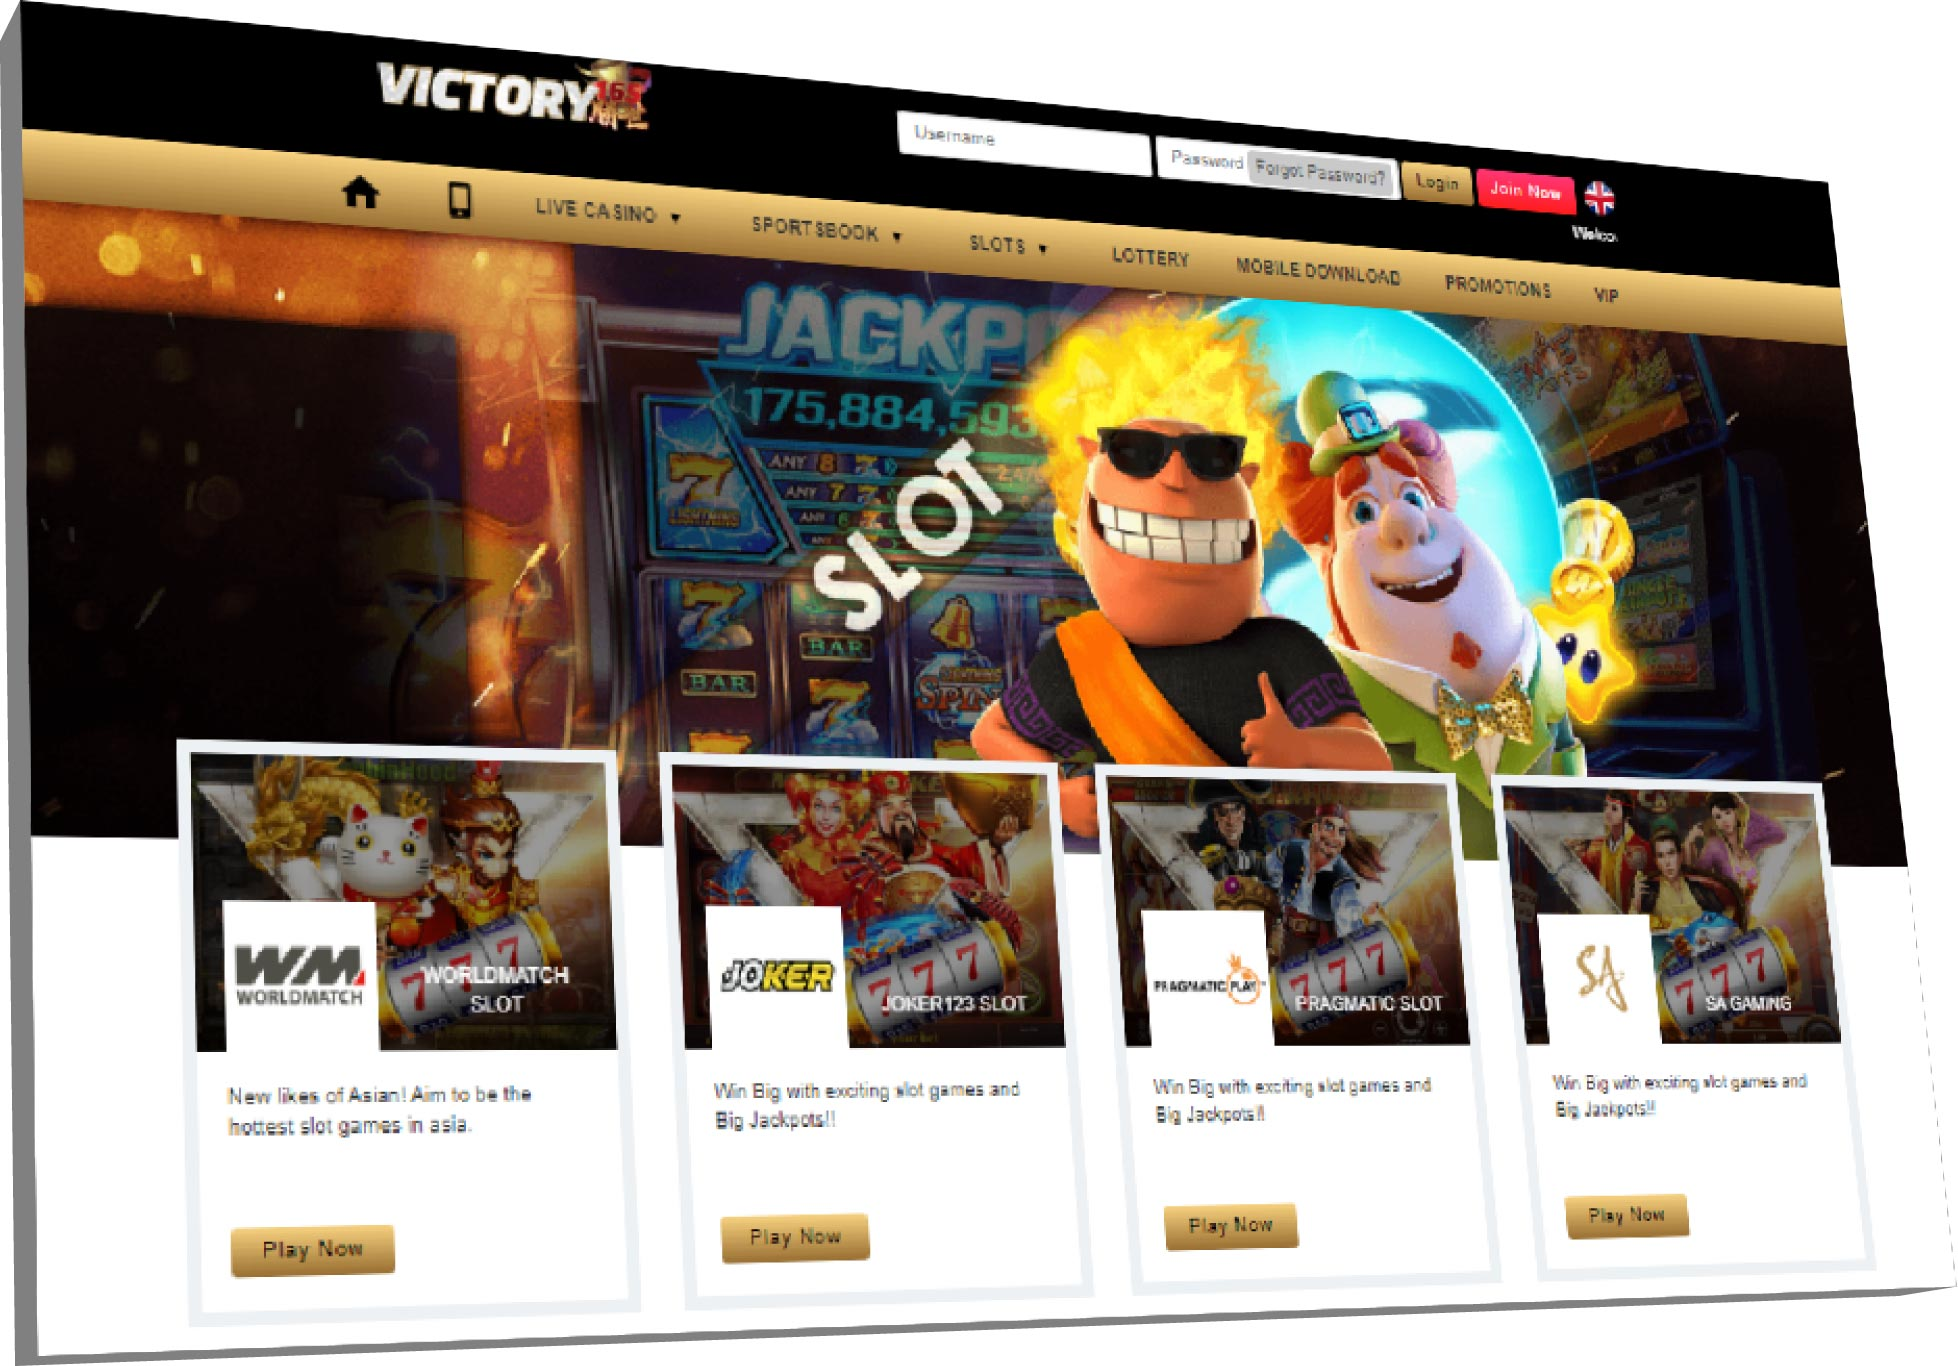 The Best Casino Games – Play Slots Games